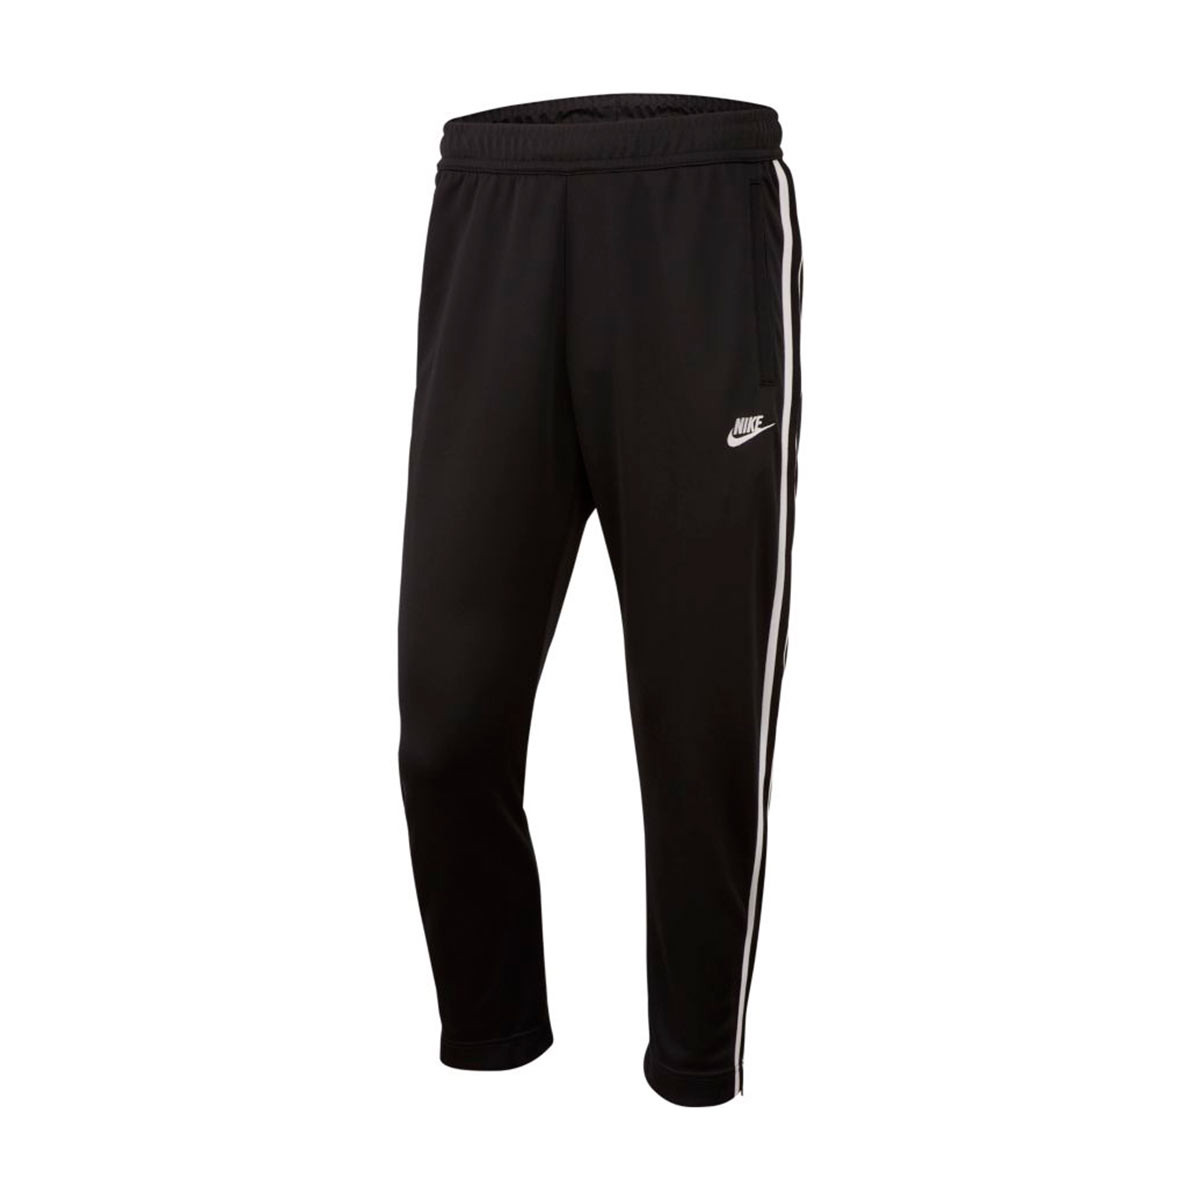 salario Circunstancias imprevistas comodidad  Long pants Nike Sportswear PK OH Tribute Black-White - Football store  Fútbol Emotion